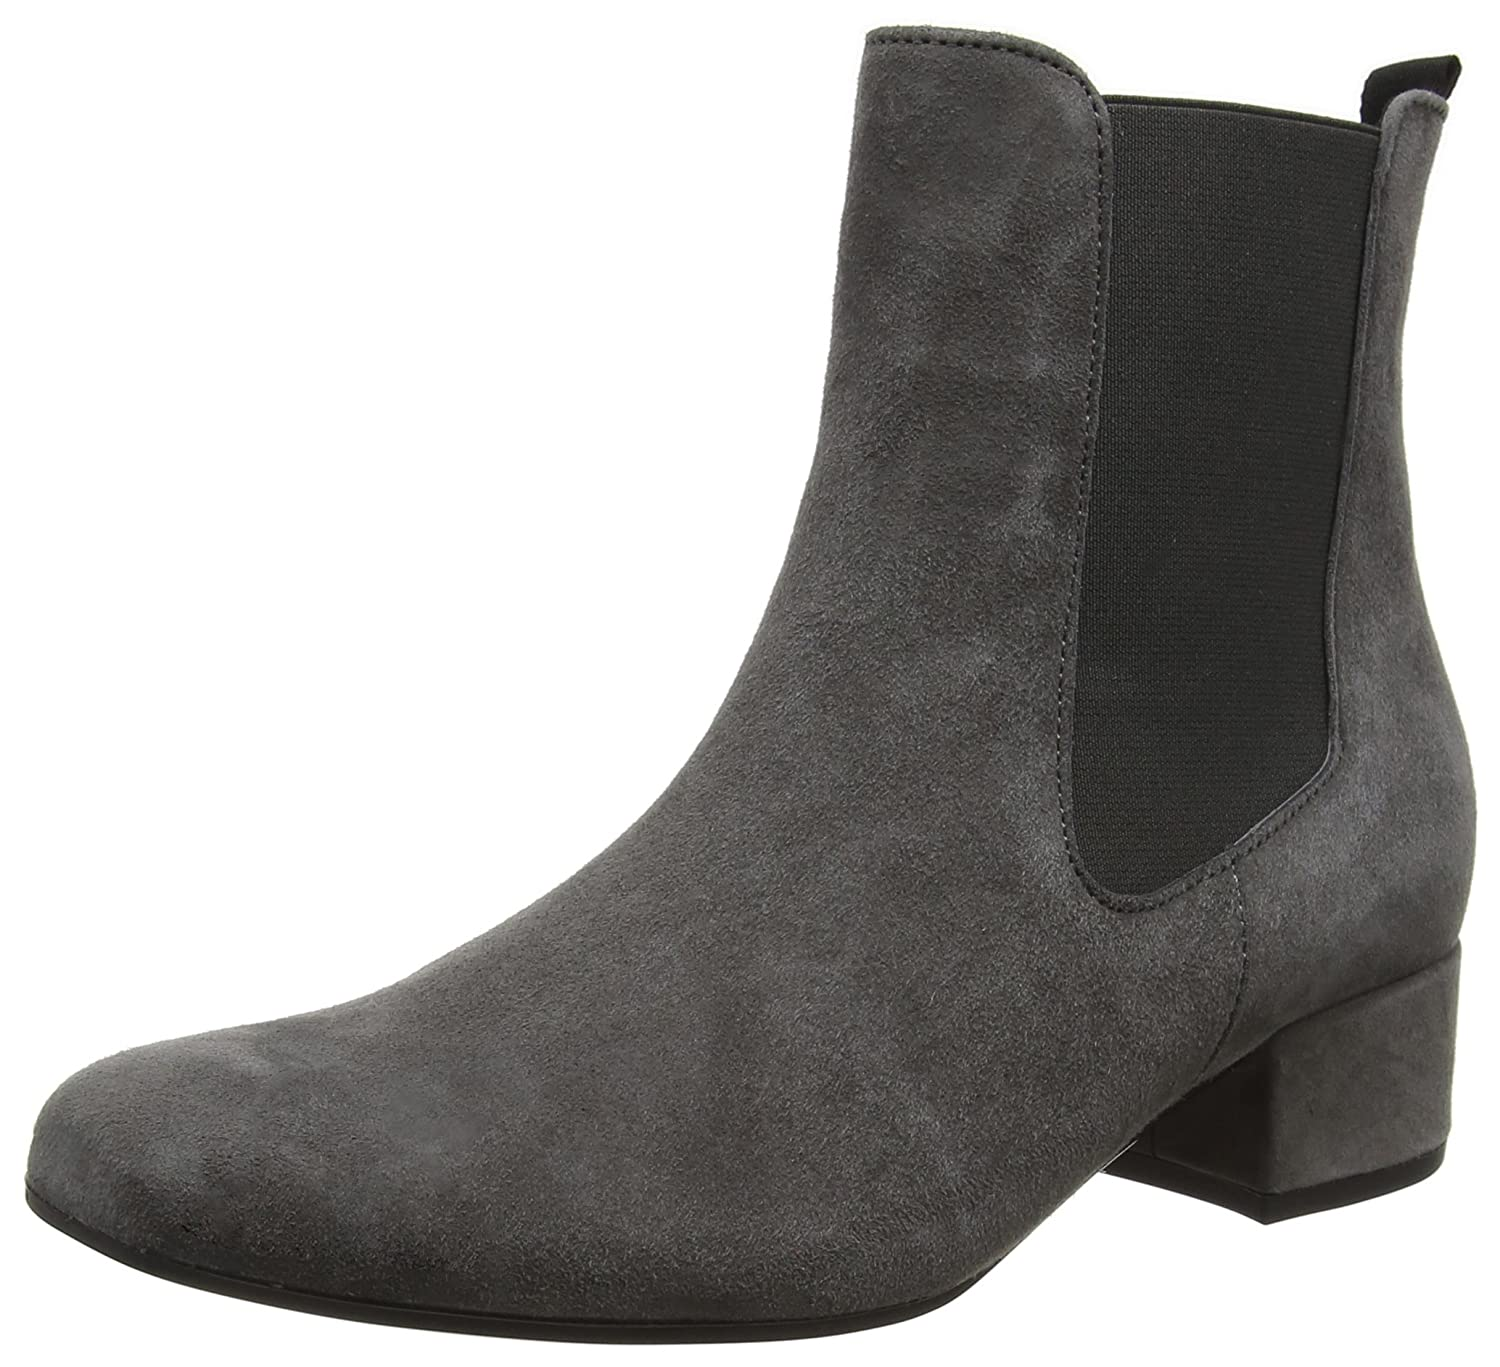 Gabor Shoes Gabor Basic, Botas para Mujer39 EU|Gris (19 Dark-grey)